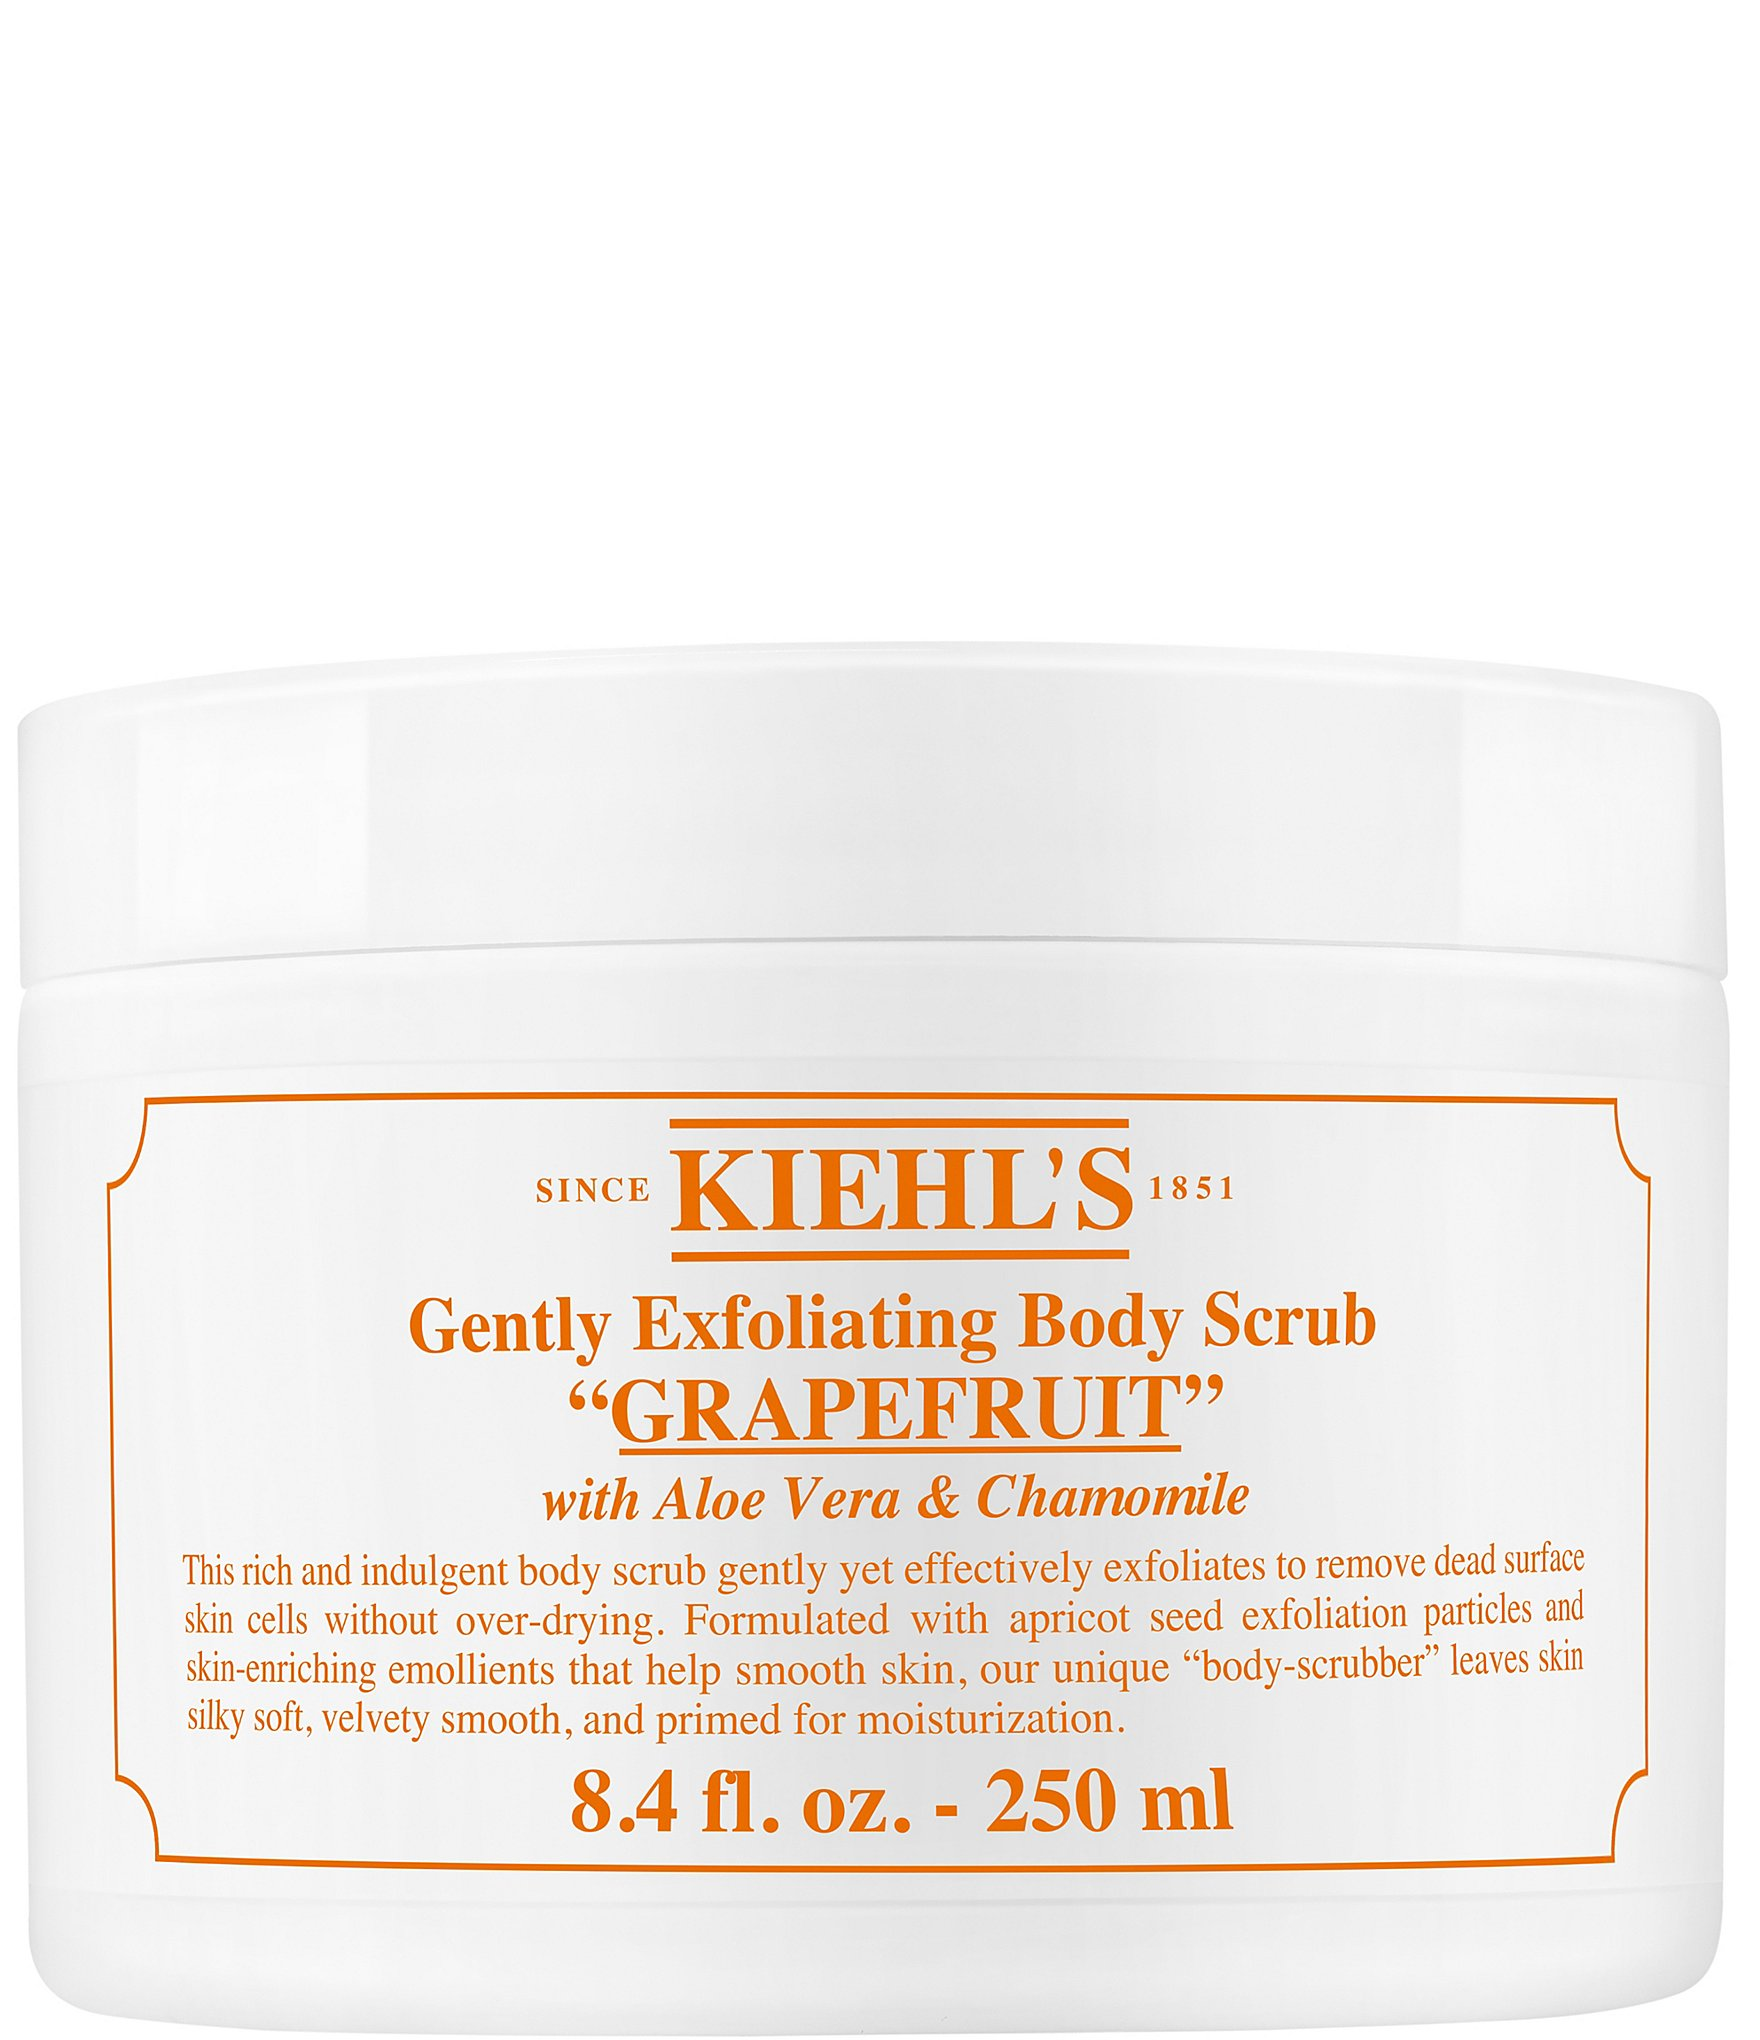 Incredible Spreadable Smoothing Ginger Body Scrub by origins #22